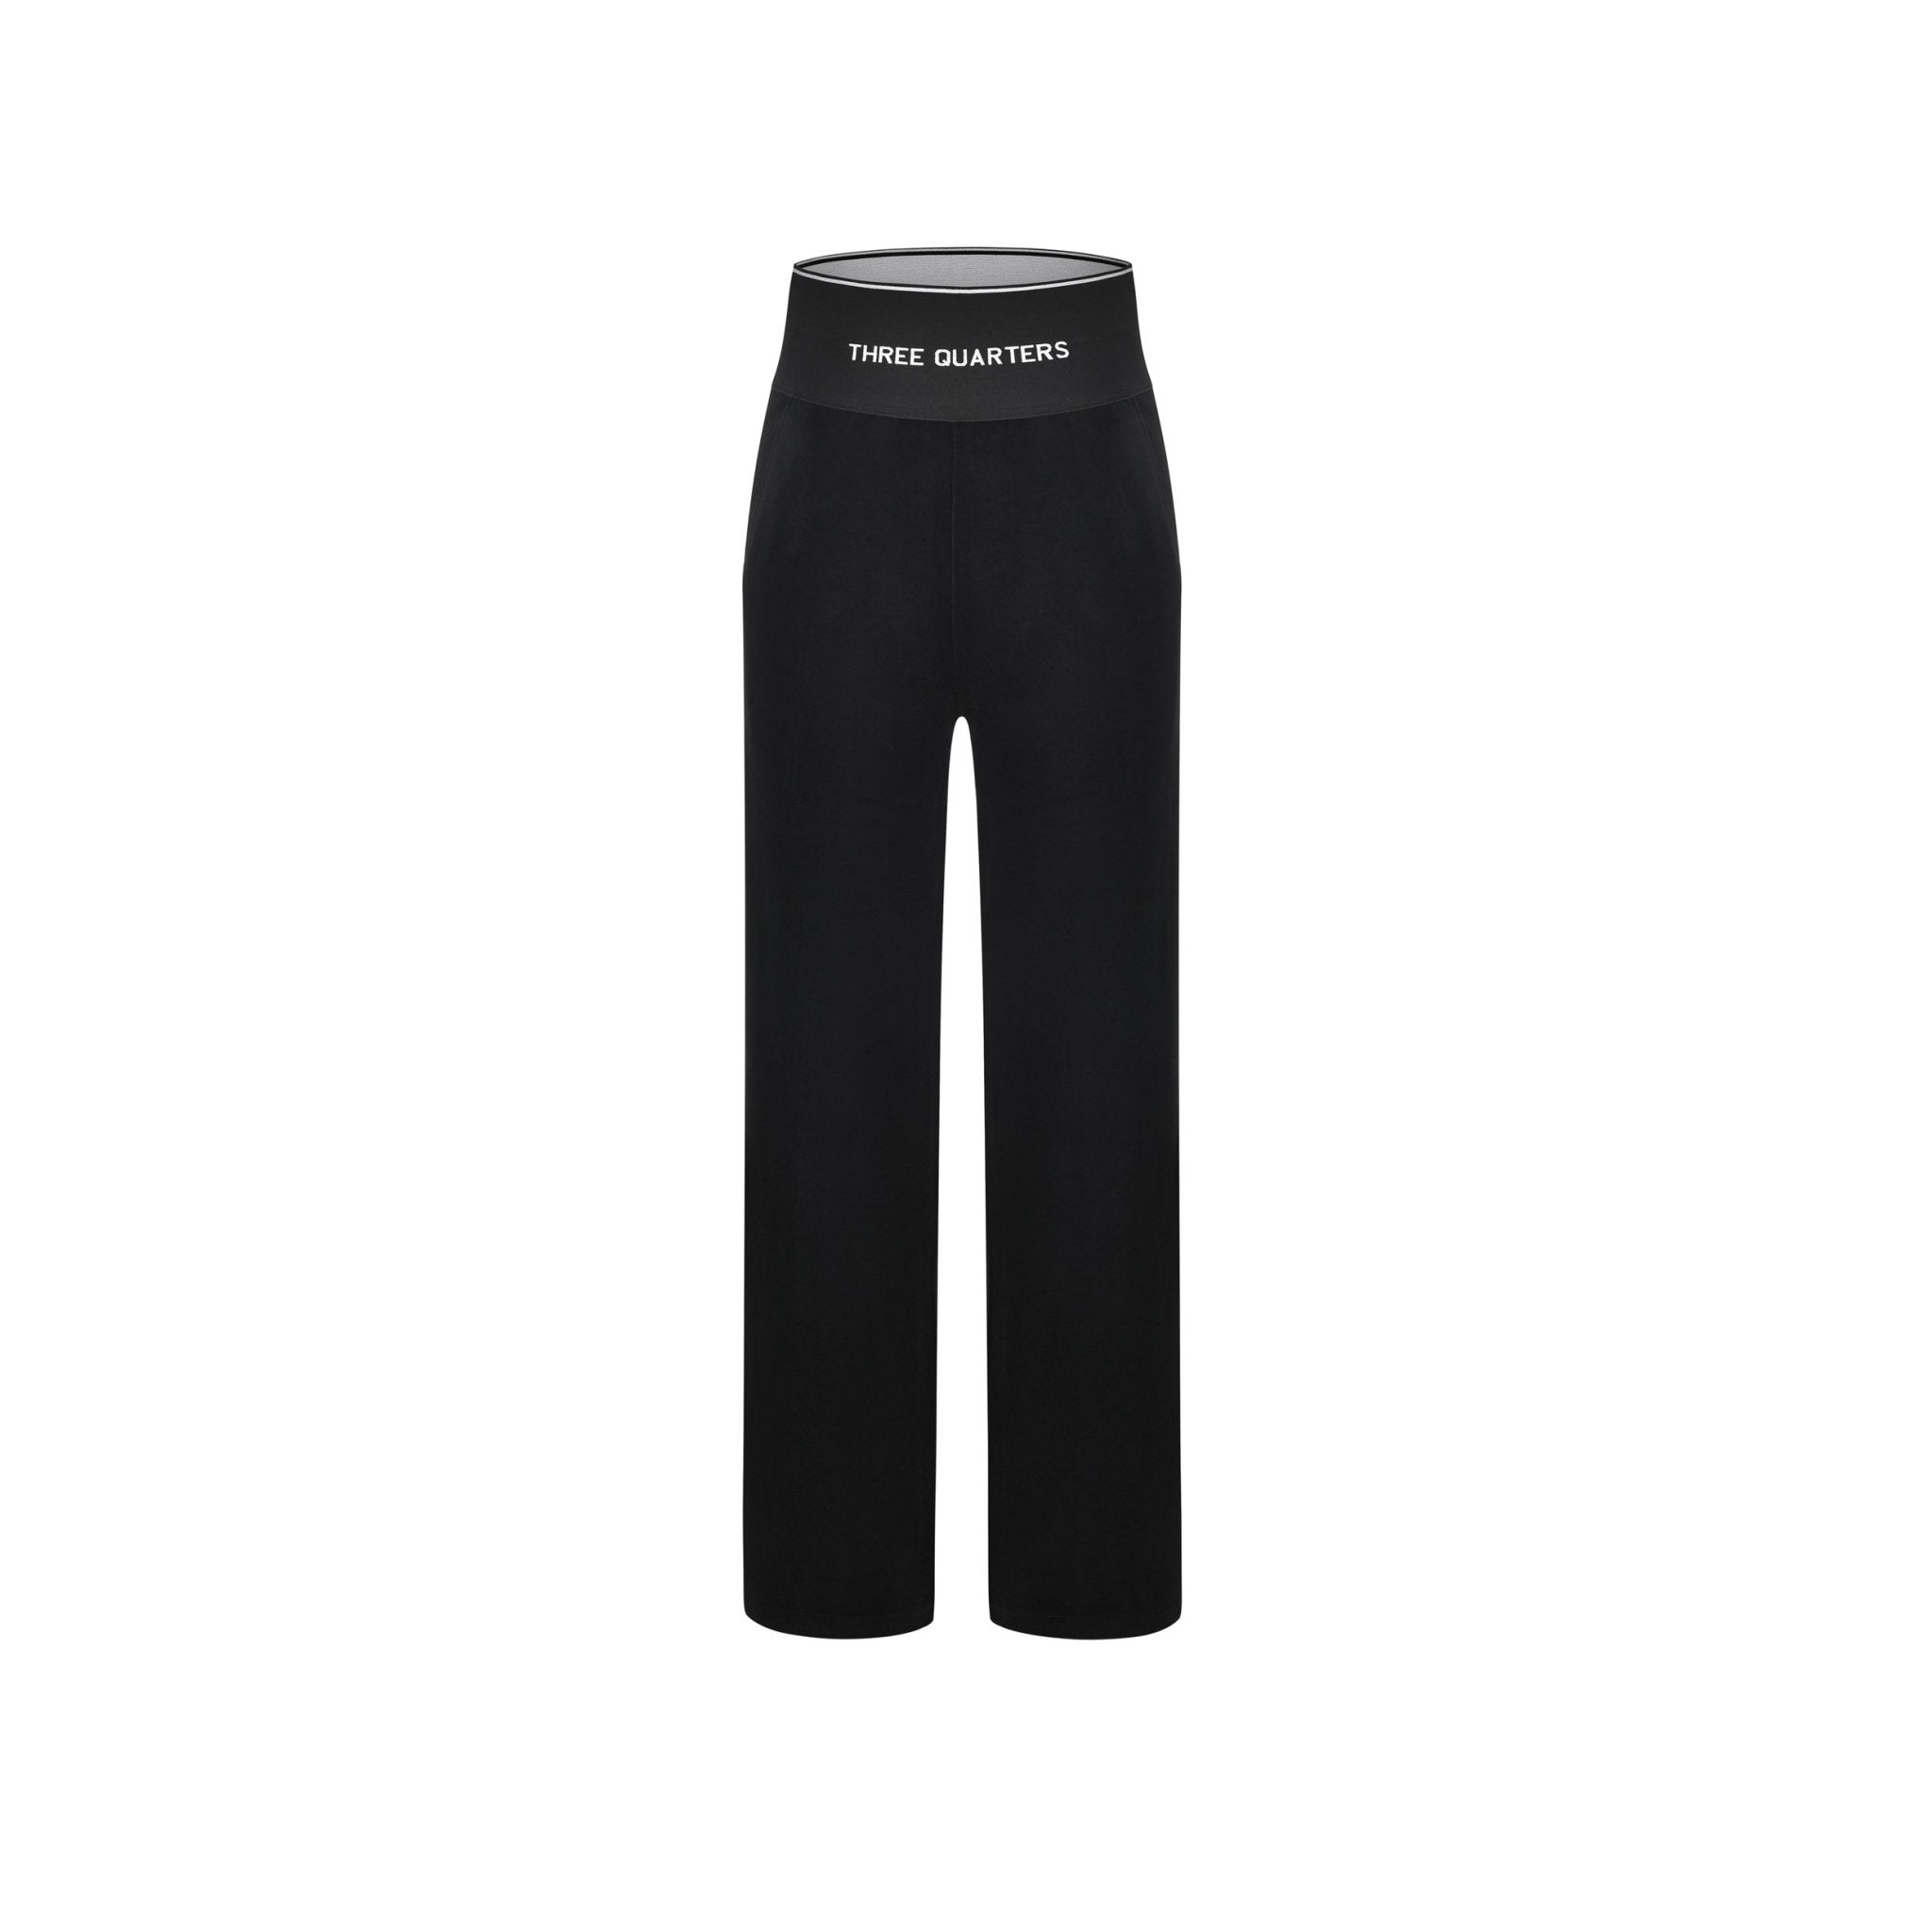 THREE QUARTERS Black Velvet Pants | MADA IN CHINA